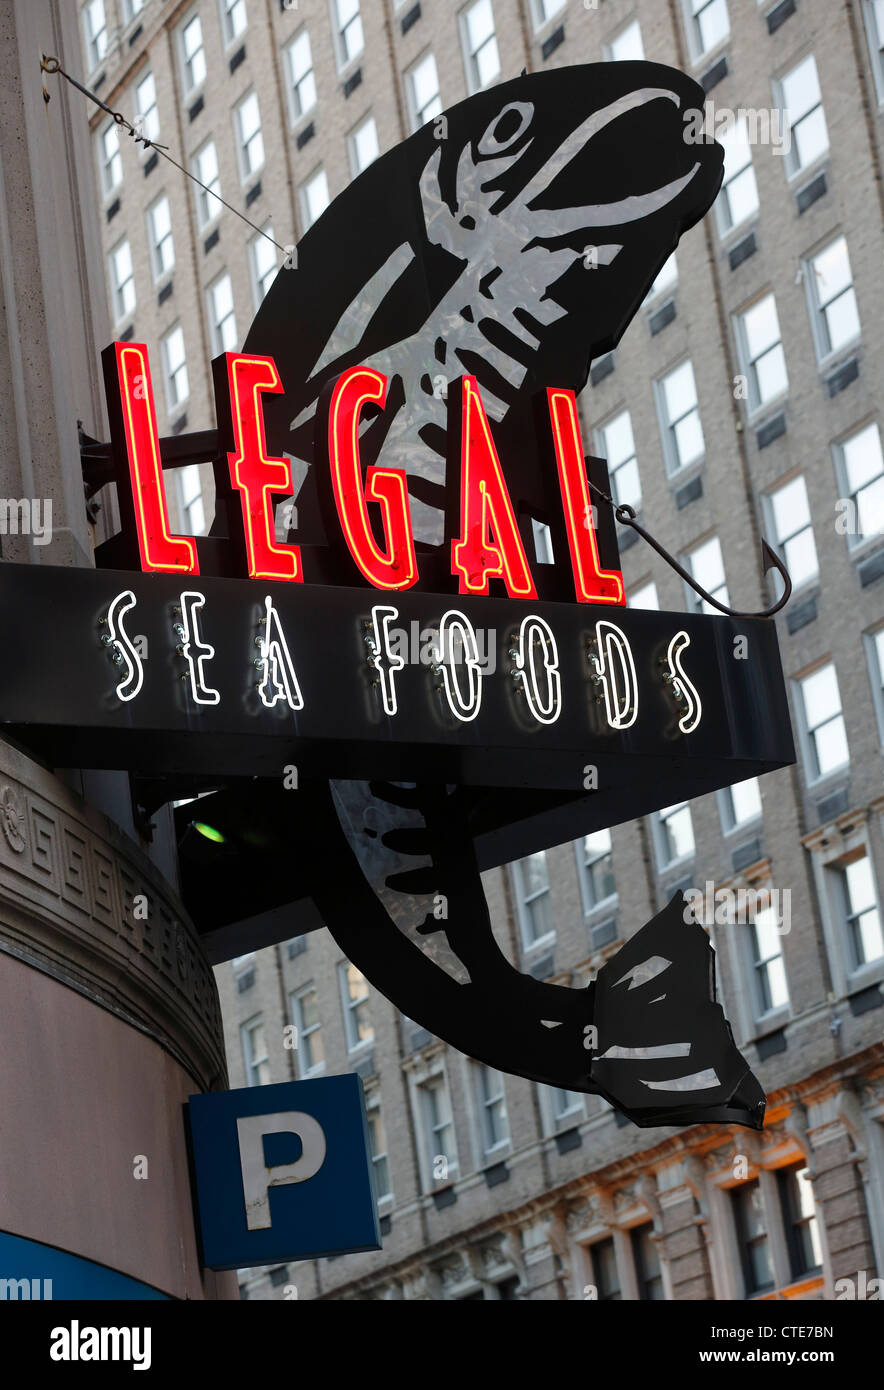 Legal Seafoods Restaurant Neon Sign, Boston, Massachusetts Stockbild